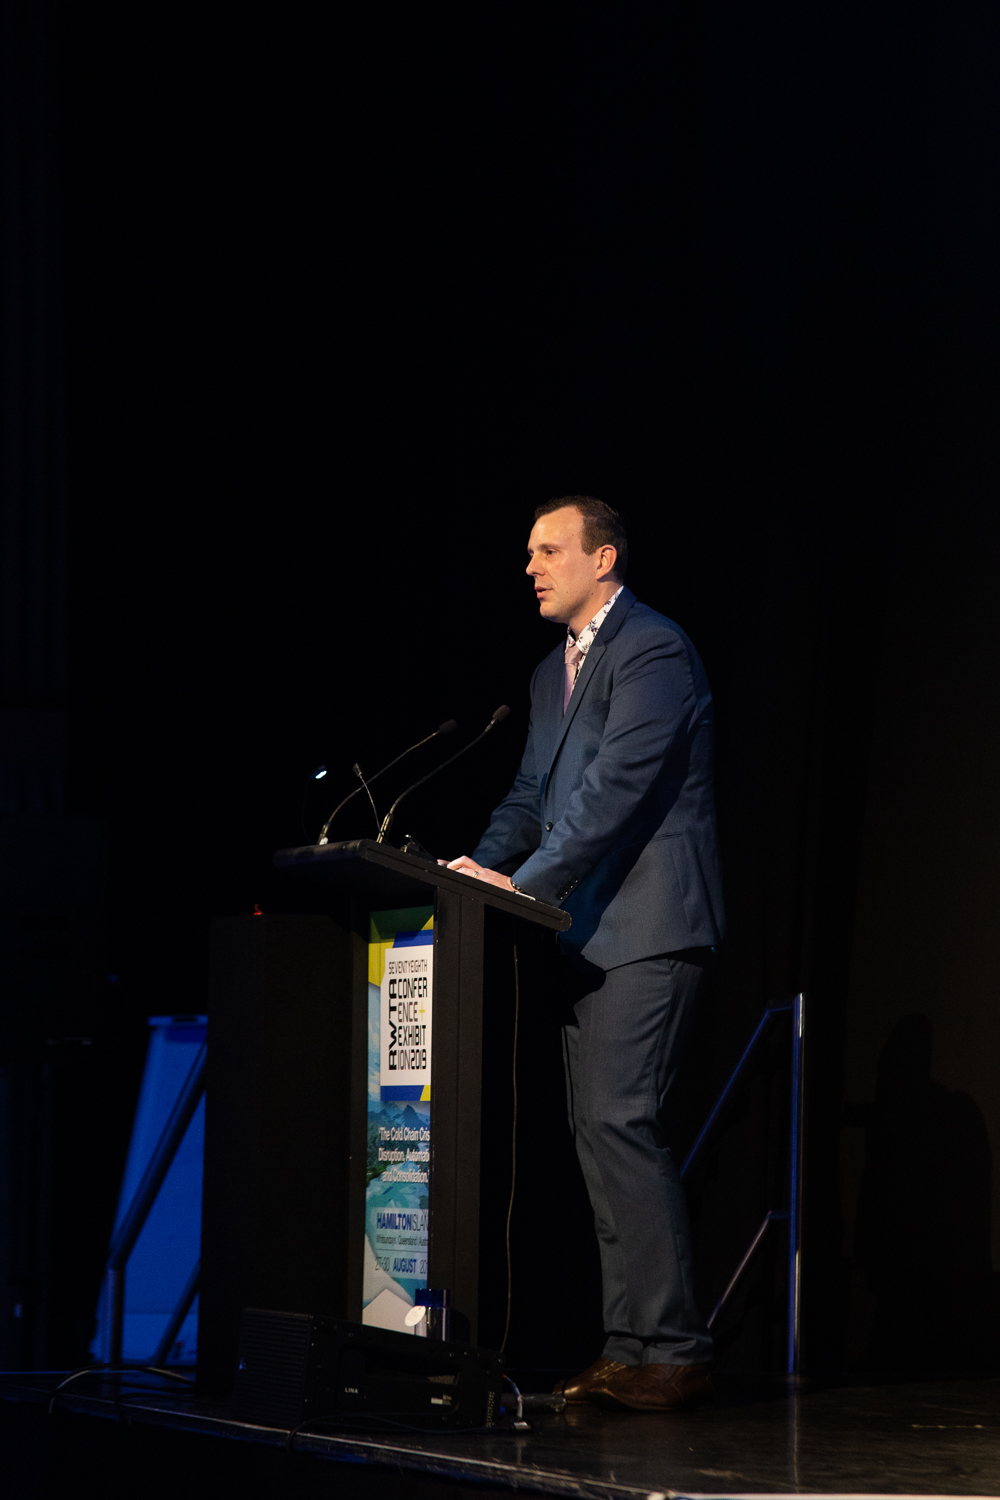 1908280025 RWTA Conferencing Session Highlights.jpg